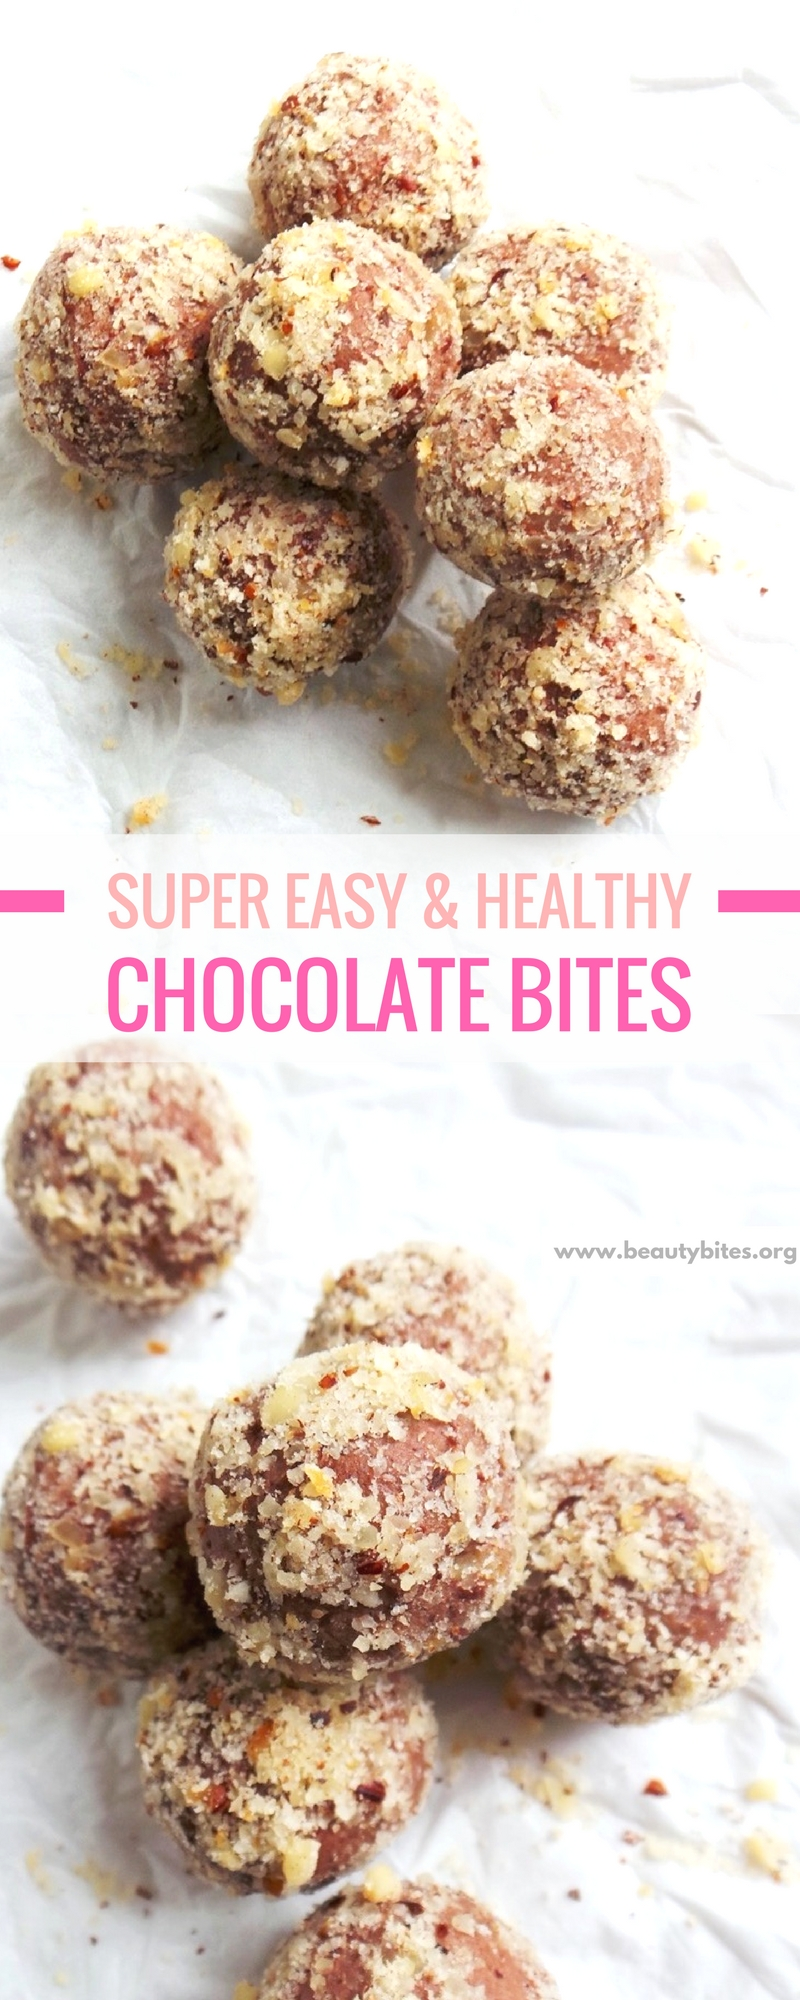 Satisfy your chocolate cravings with these chocolate bites! This is a healthy chocolate dessert that's easy and quick, full of antioxidants and good source of omega-3's! | beautybites.org | Clean Eating Dessert Recipes